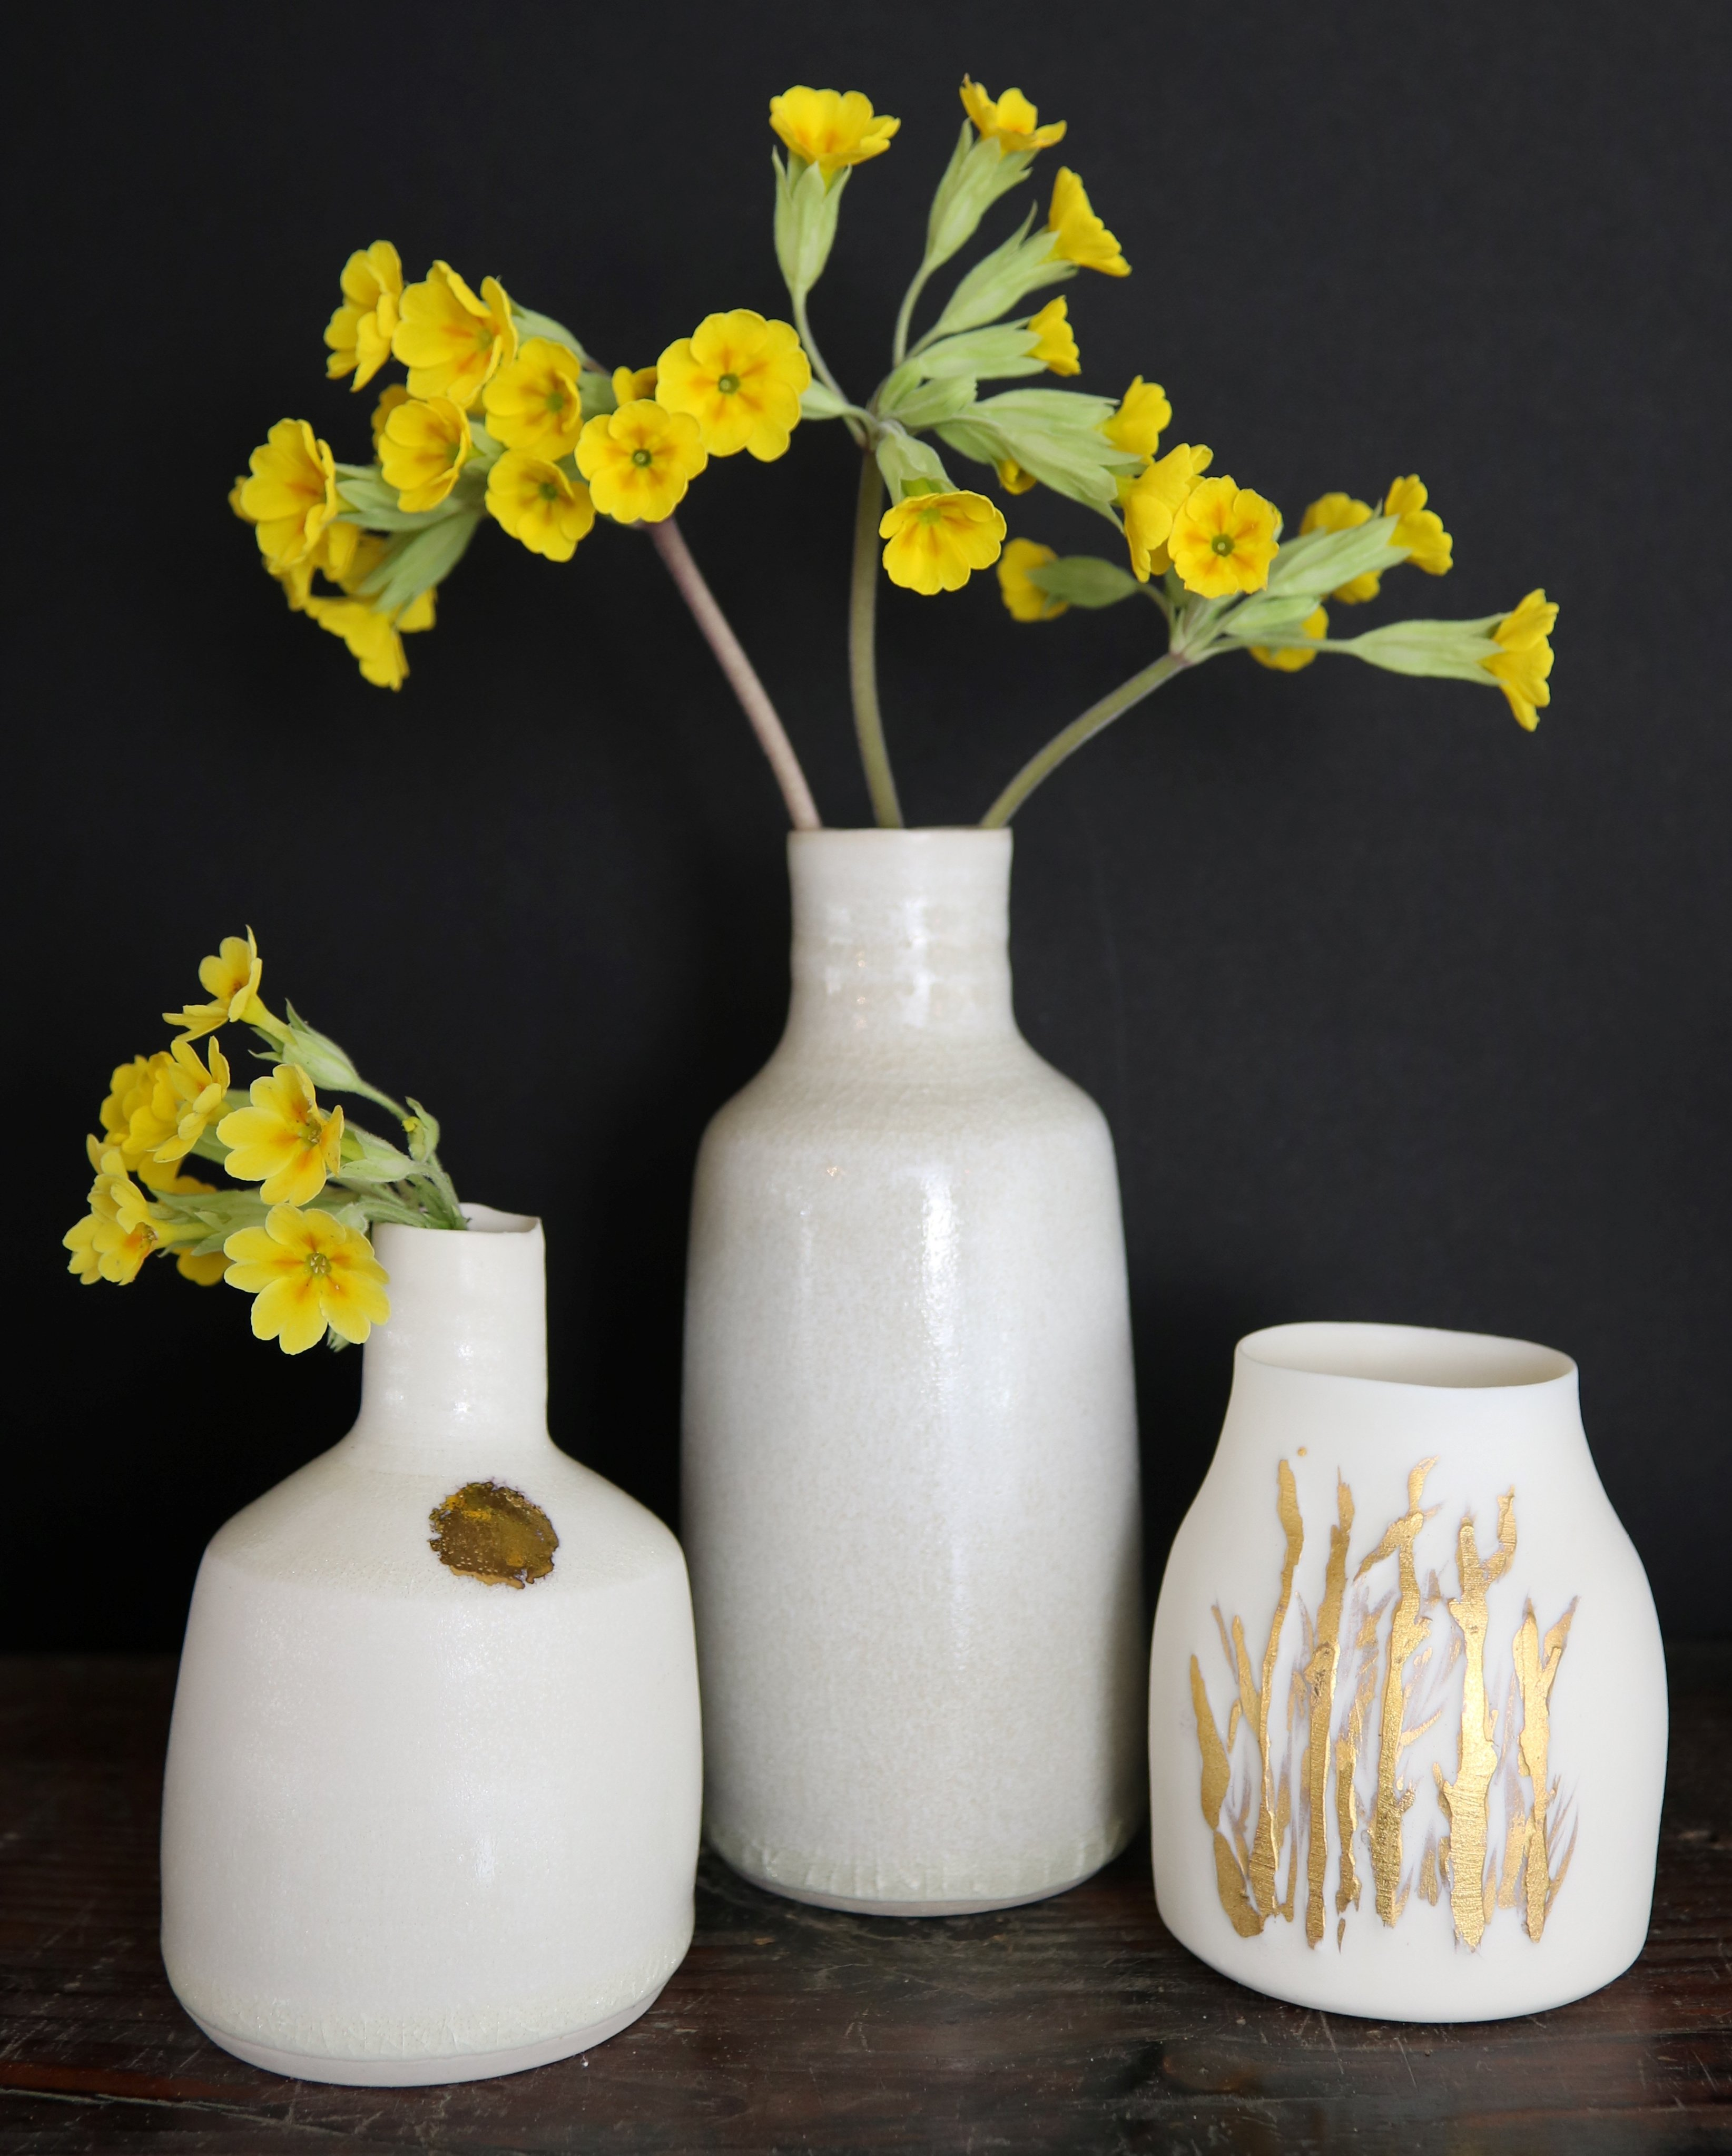 https://0501.nccdn.net/4_2/000/000/03f/ac7/porcelain-and-stoneware-with-cowslips-2019-3288x4092.jpg